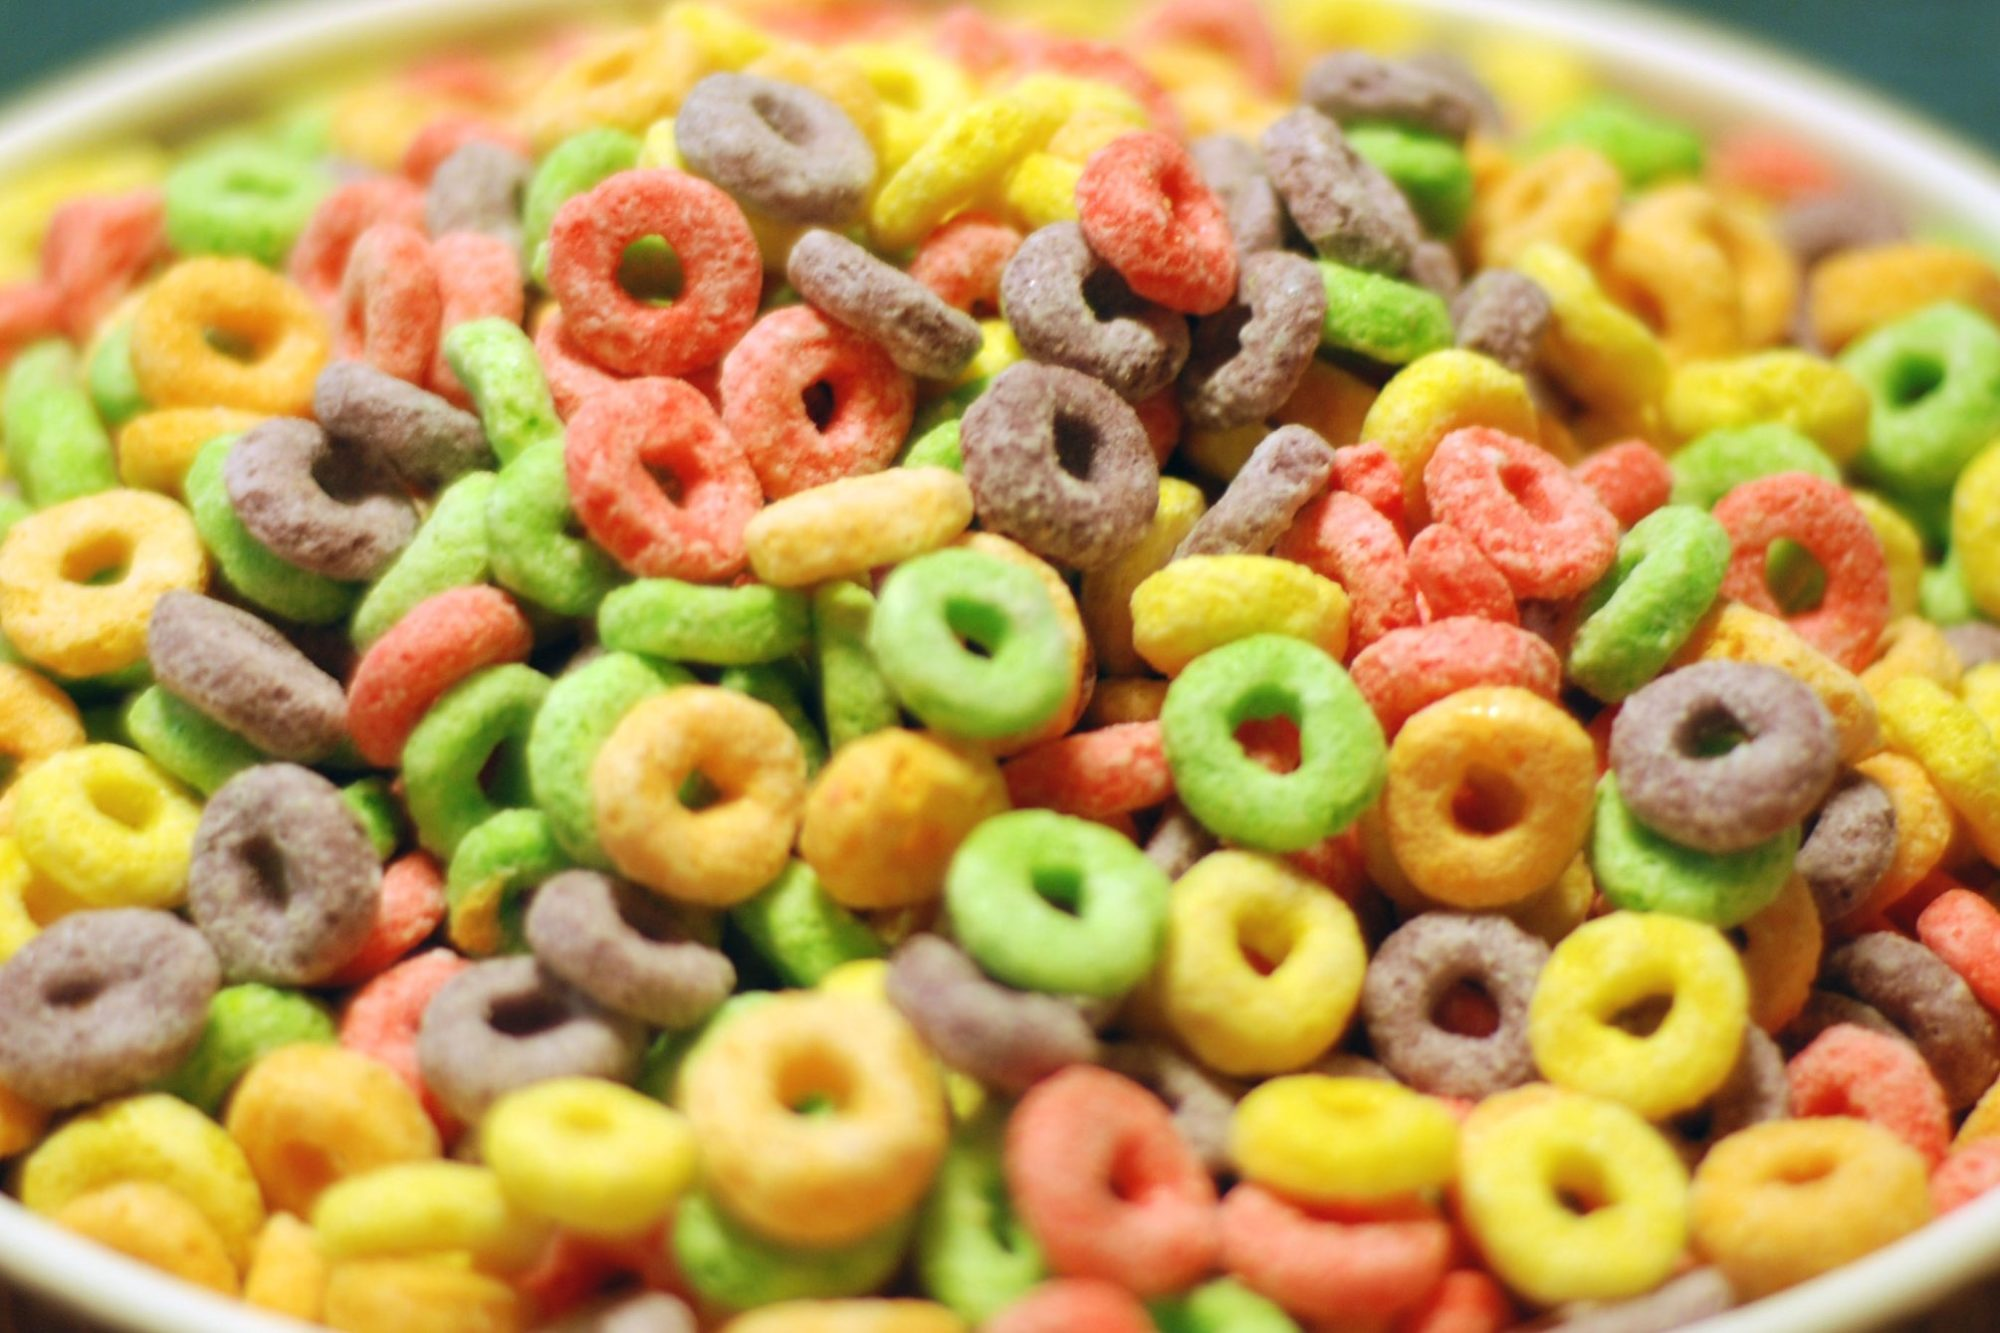 Are Fruit Loops Vegan?